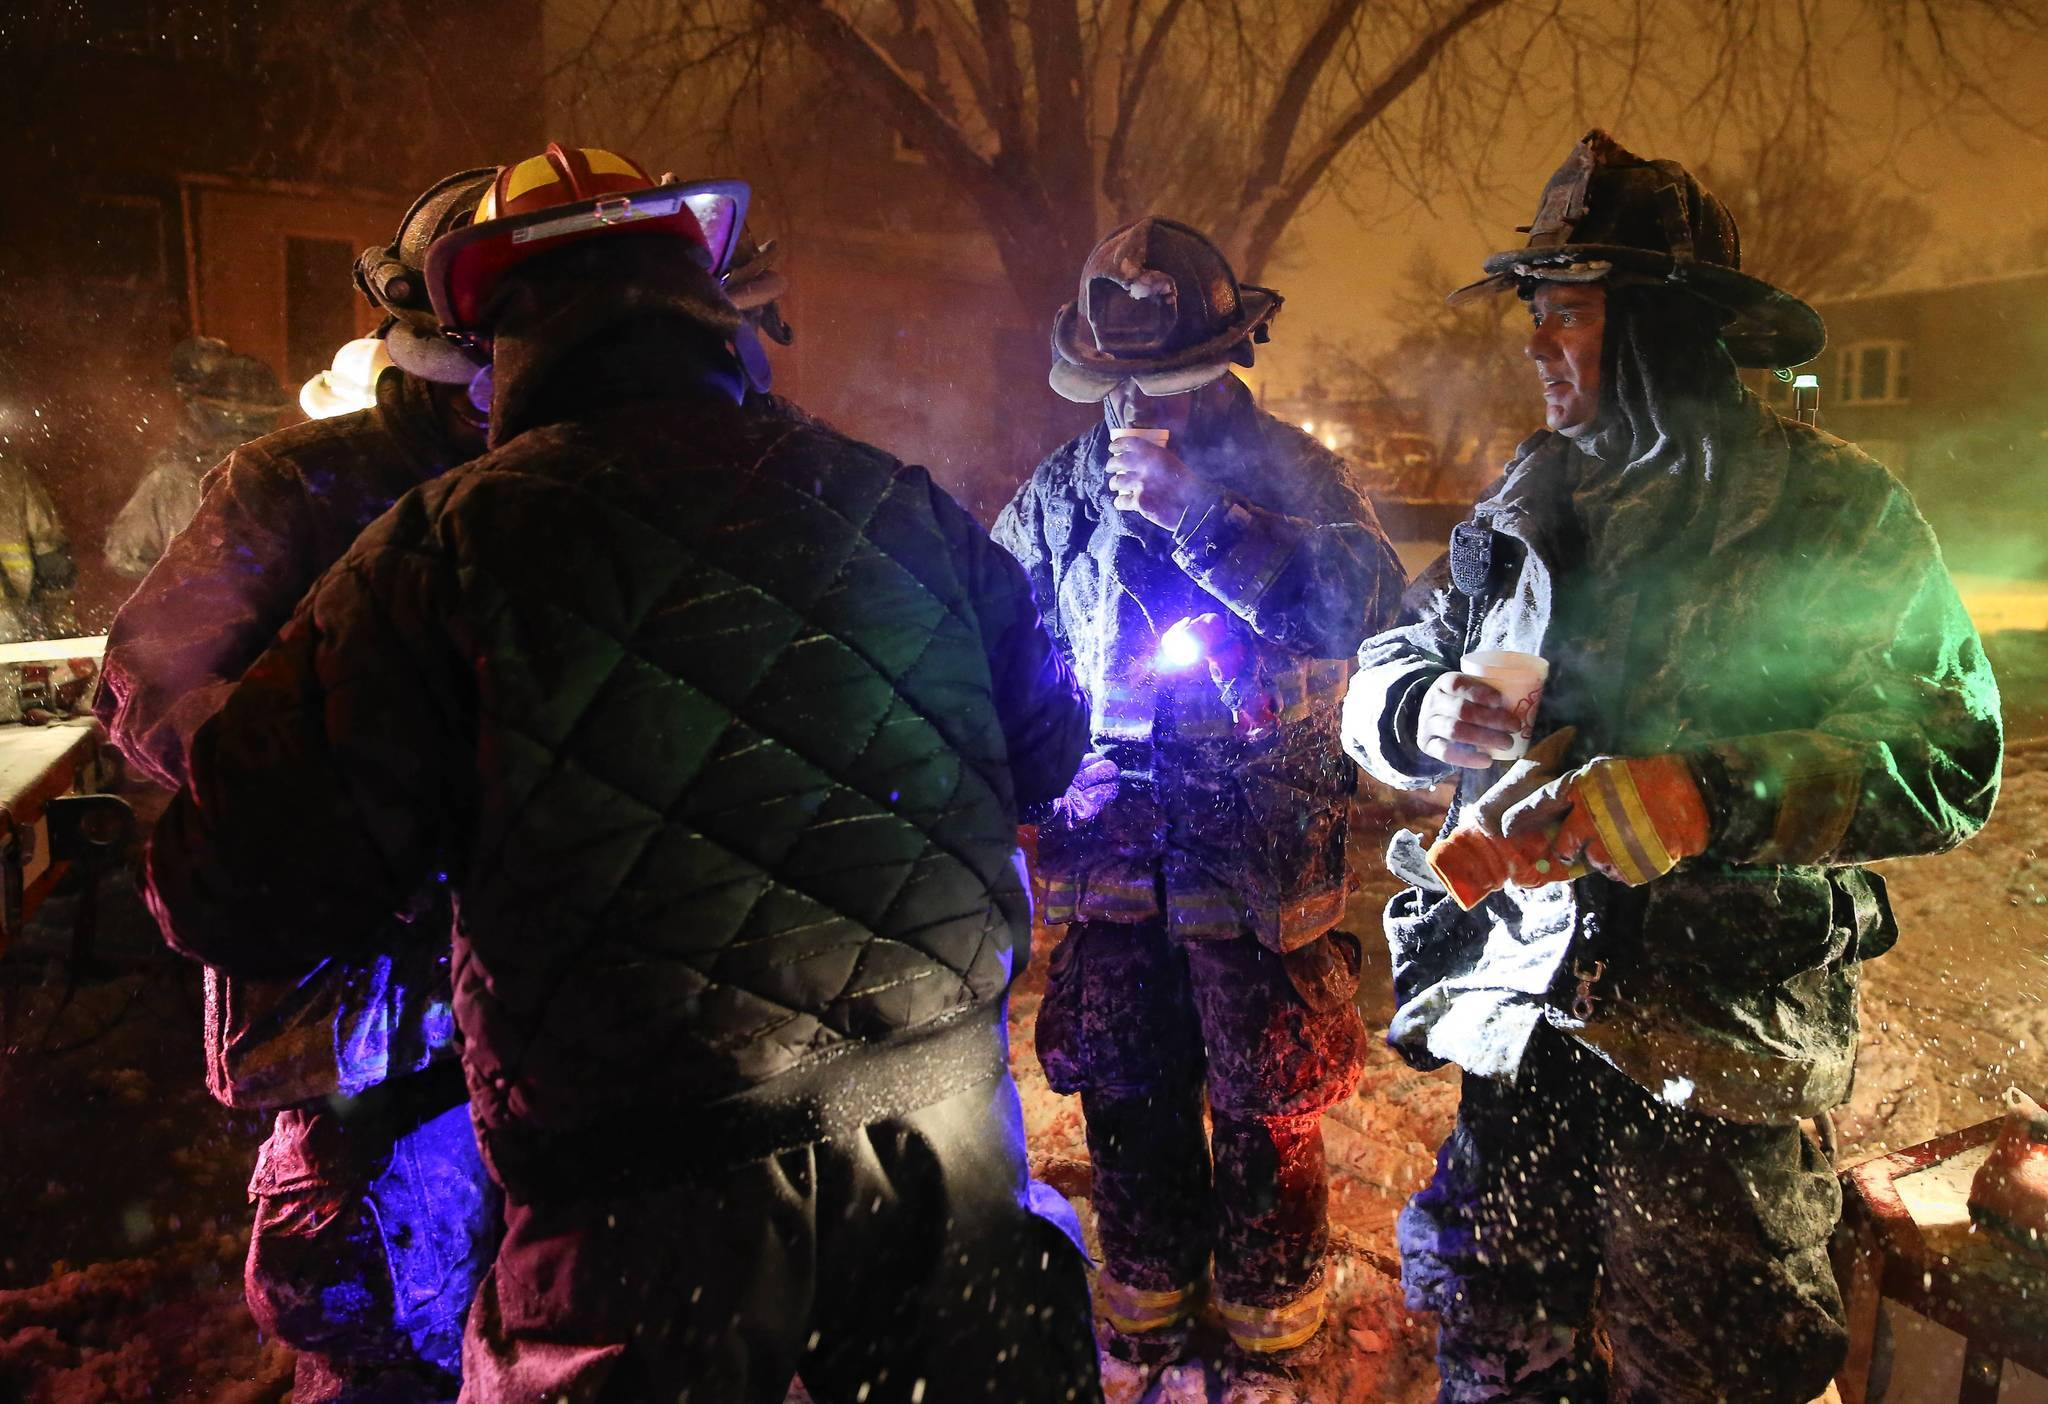 Chicago firefighters from Engine 123 keep warm with hot chocolate at the scene of a 211 alarm fire in the 5400 block of South Justine Avenue in Chicago Sunday night.